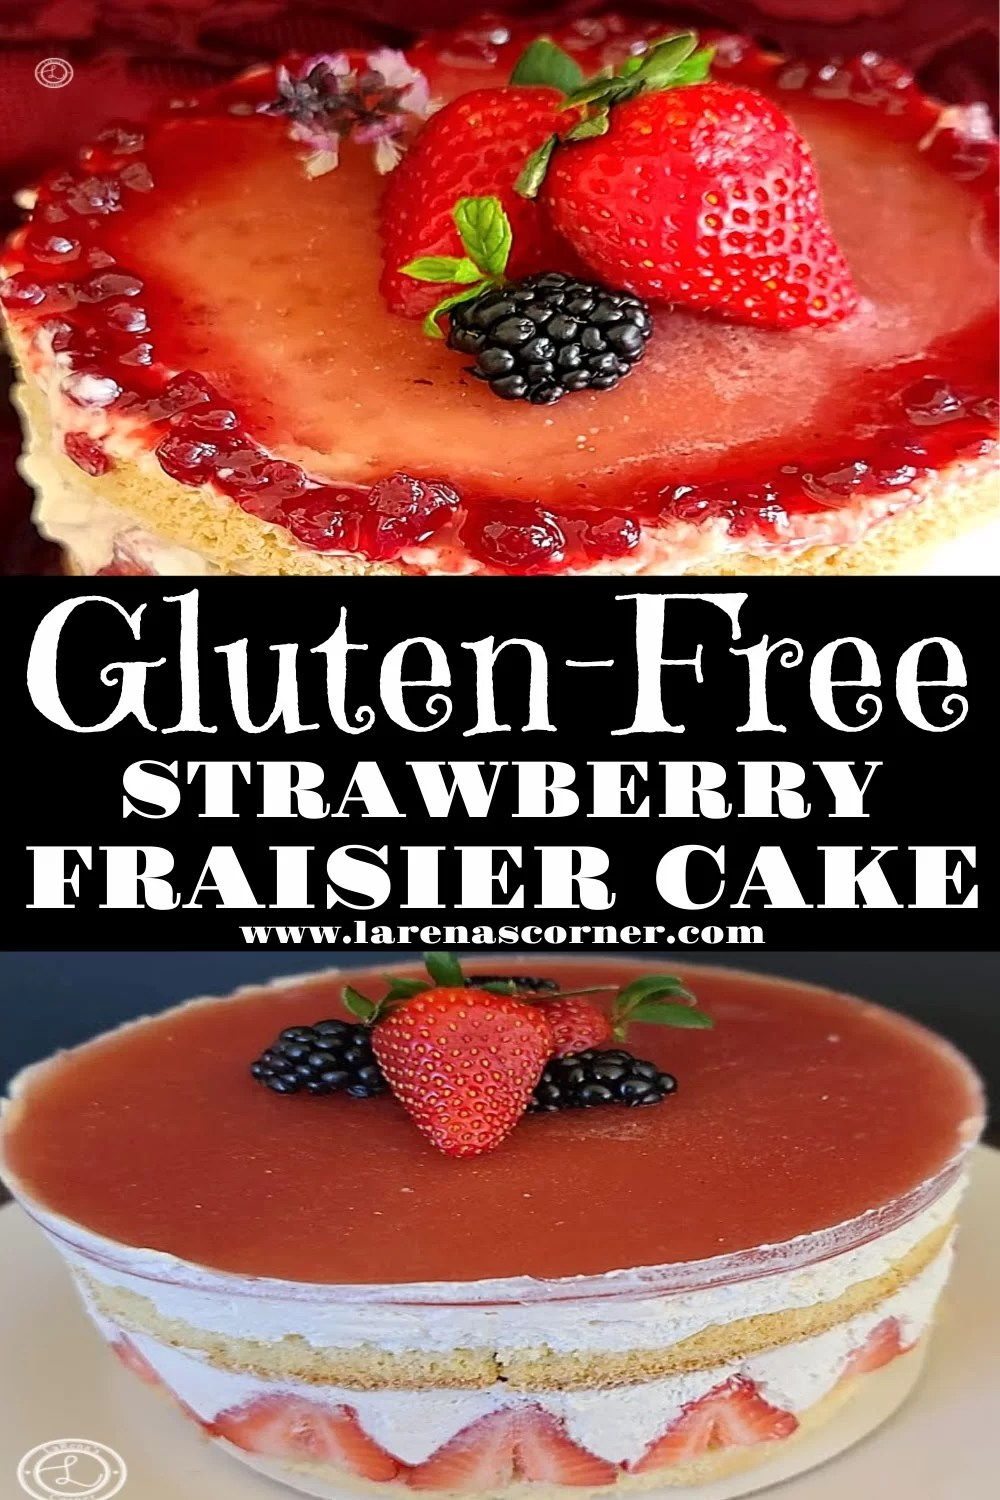 Two pictures of Gluten-Free Strawberry Fraisier Cake. One close- up of the top. One of a side view of the cake.